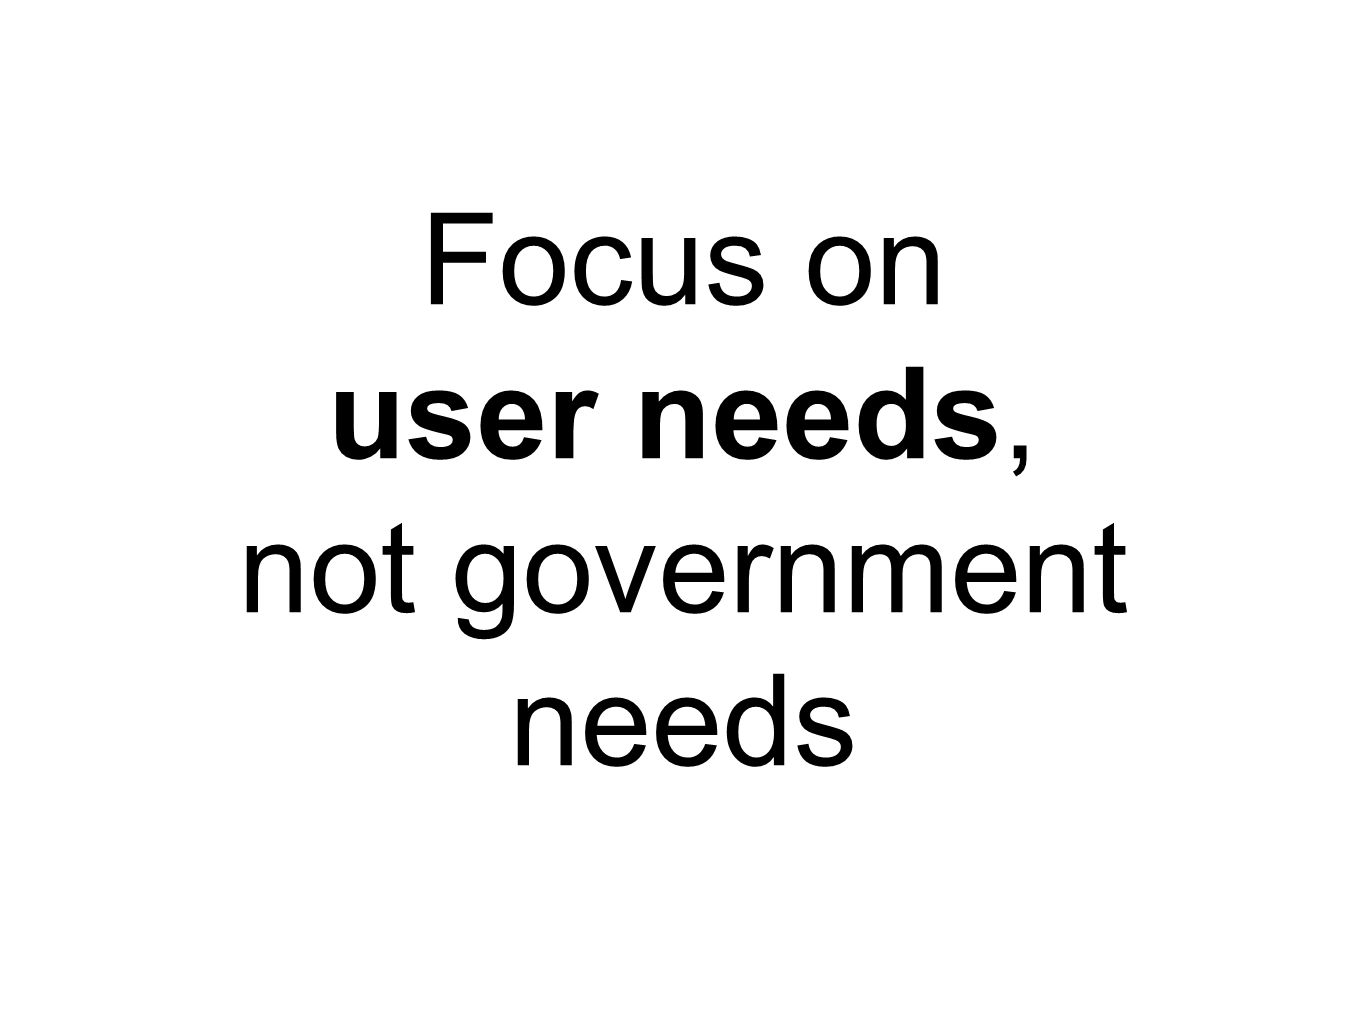 Focus on user needs, not government needs